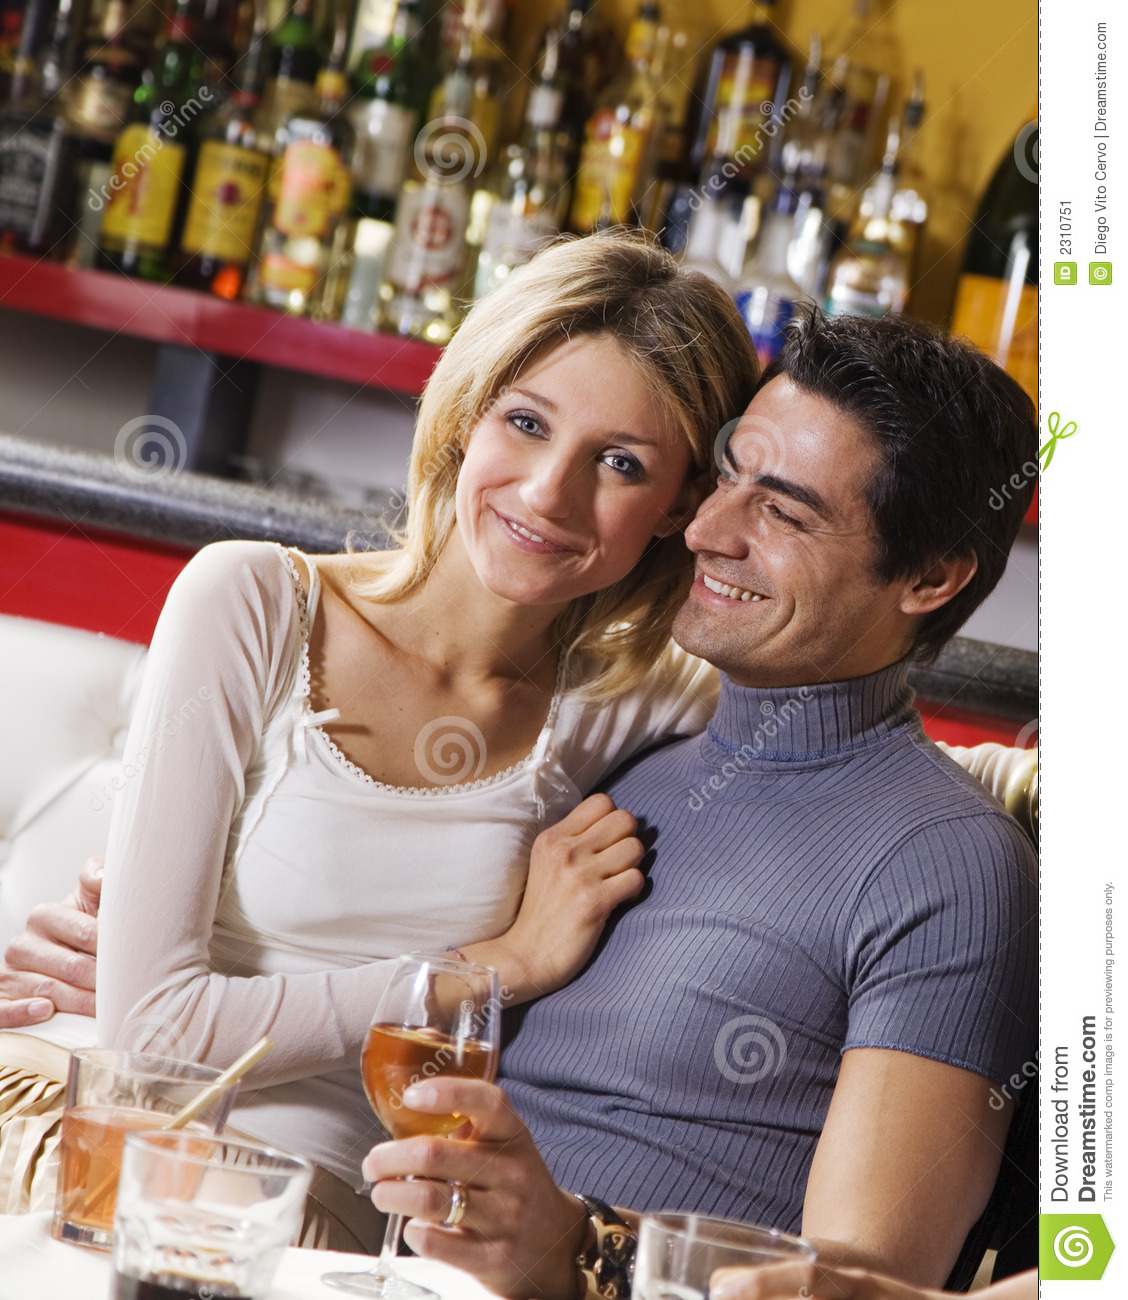 Couple Having Fun Together Stock Image. Image Of Cheerful